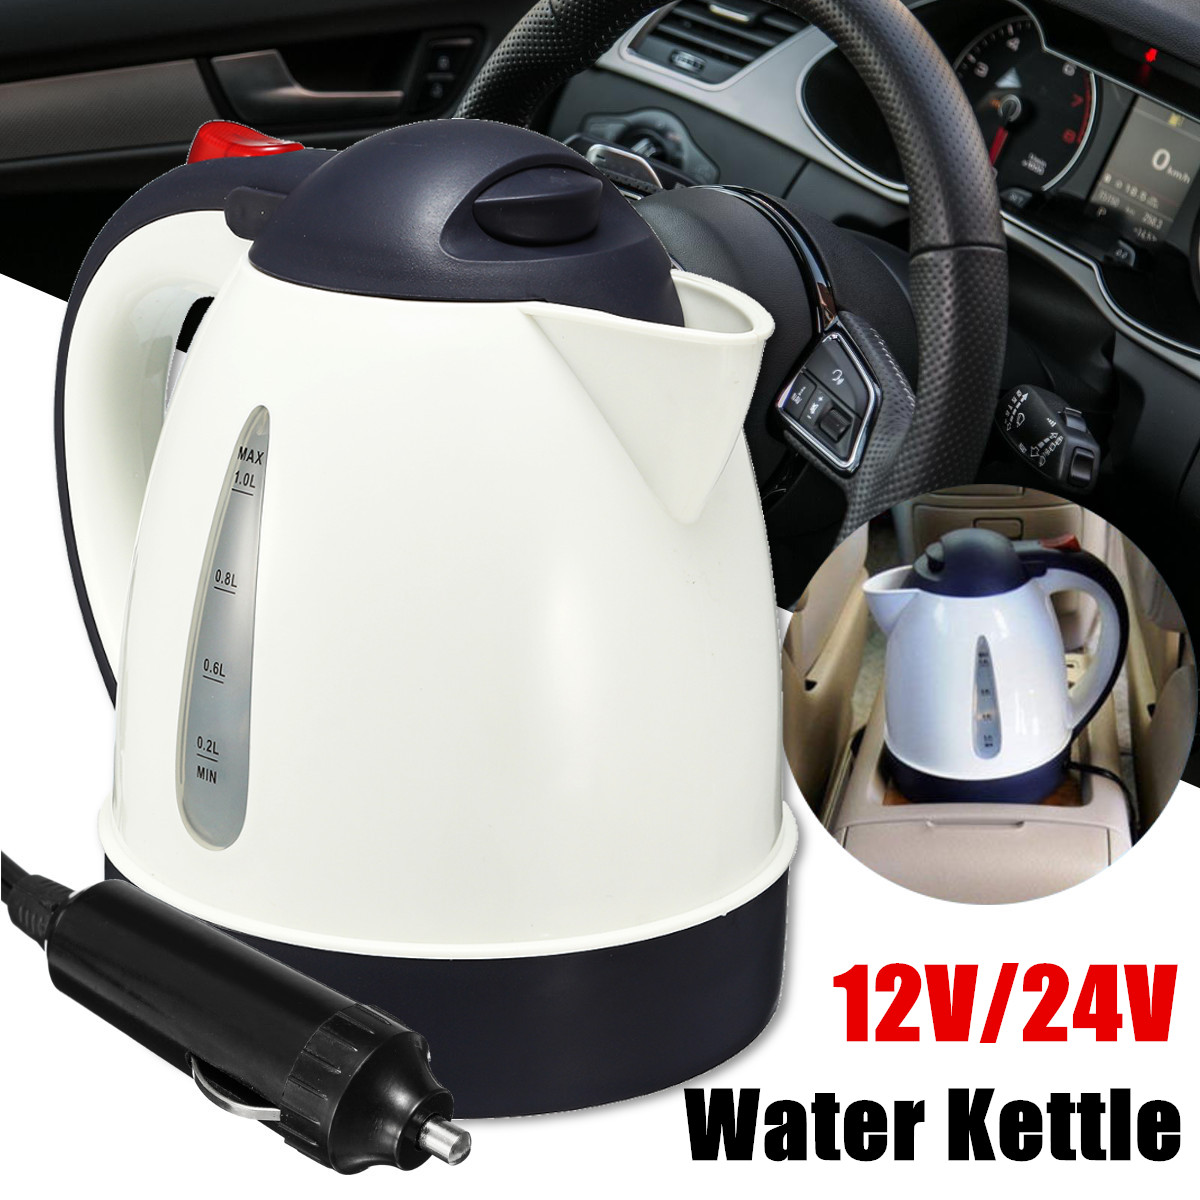 1000ml 12V/24V Portable Car Hot Water Kettle Heater Warmer Travel Camping Tea Coffee Automobile Heating Kettles Stainless Steel